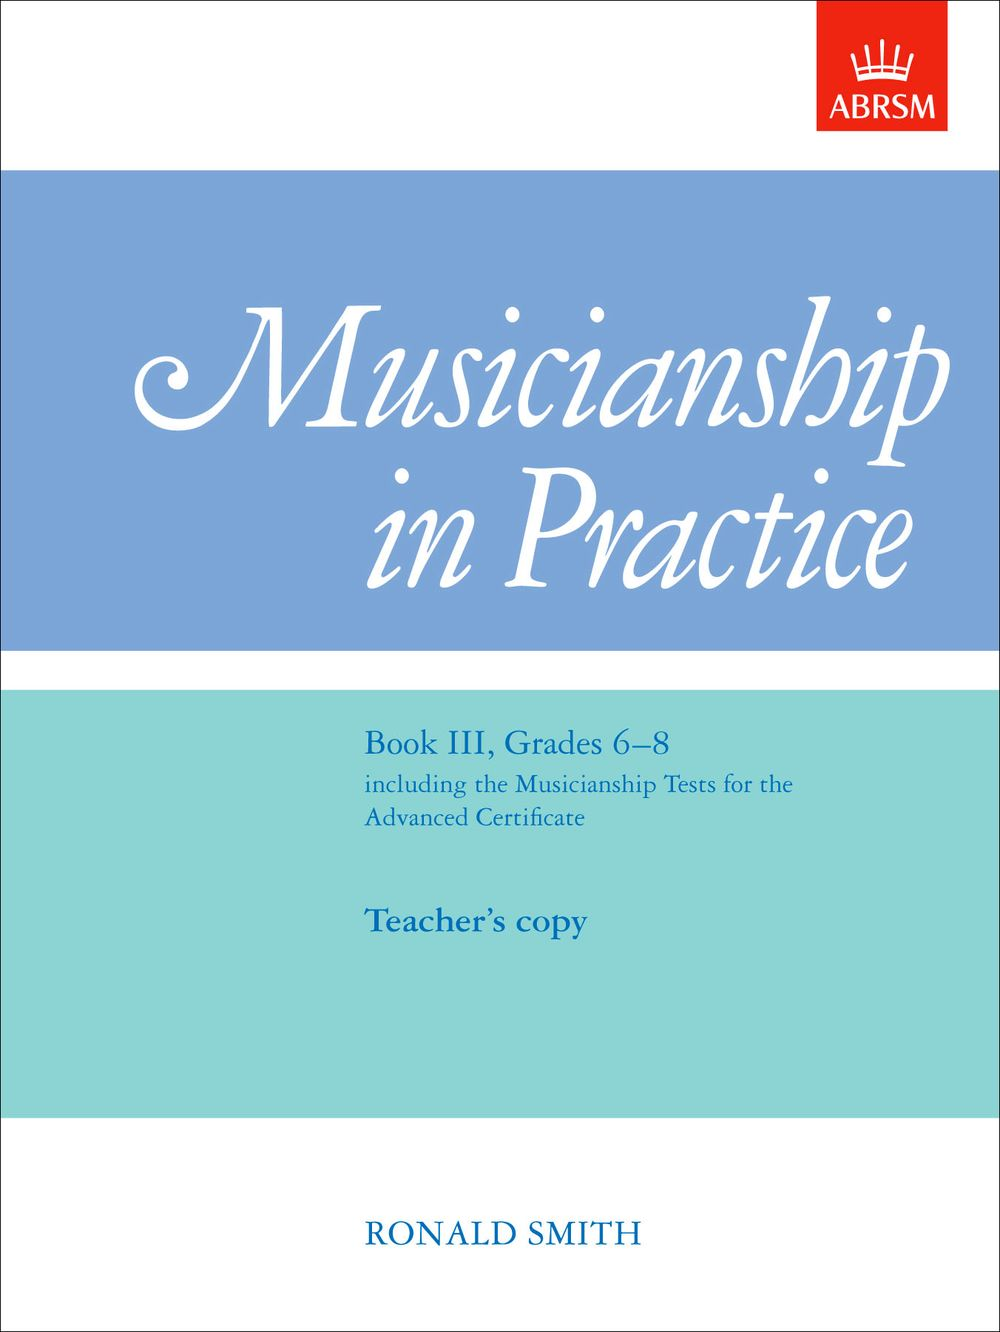 Ronald Smith: Musicianship in Practice  Book III  Grades 6-8: Theory